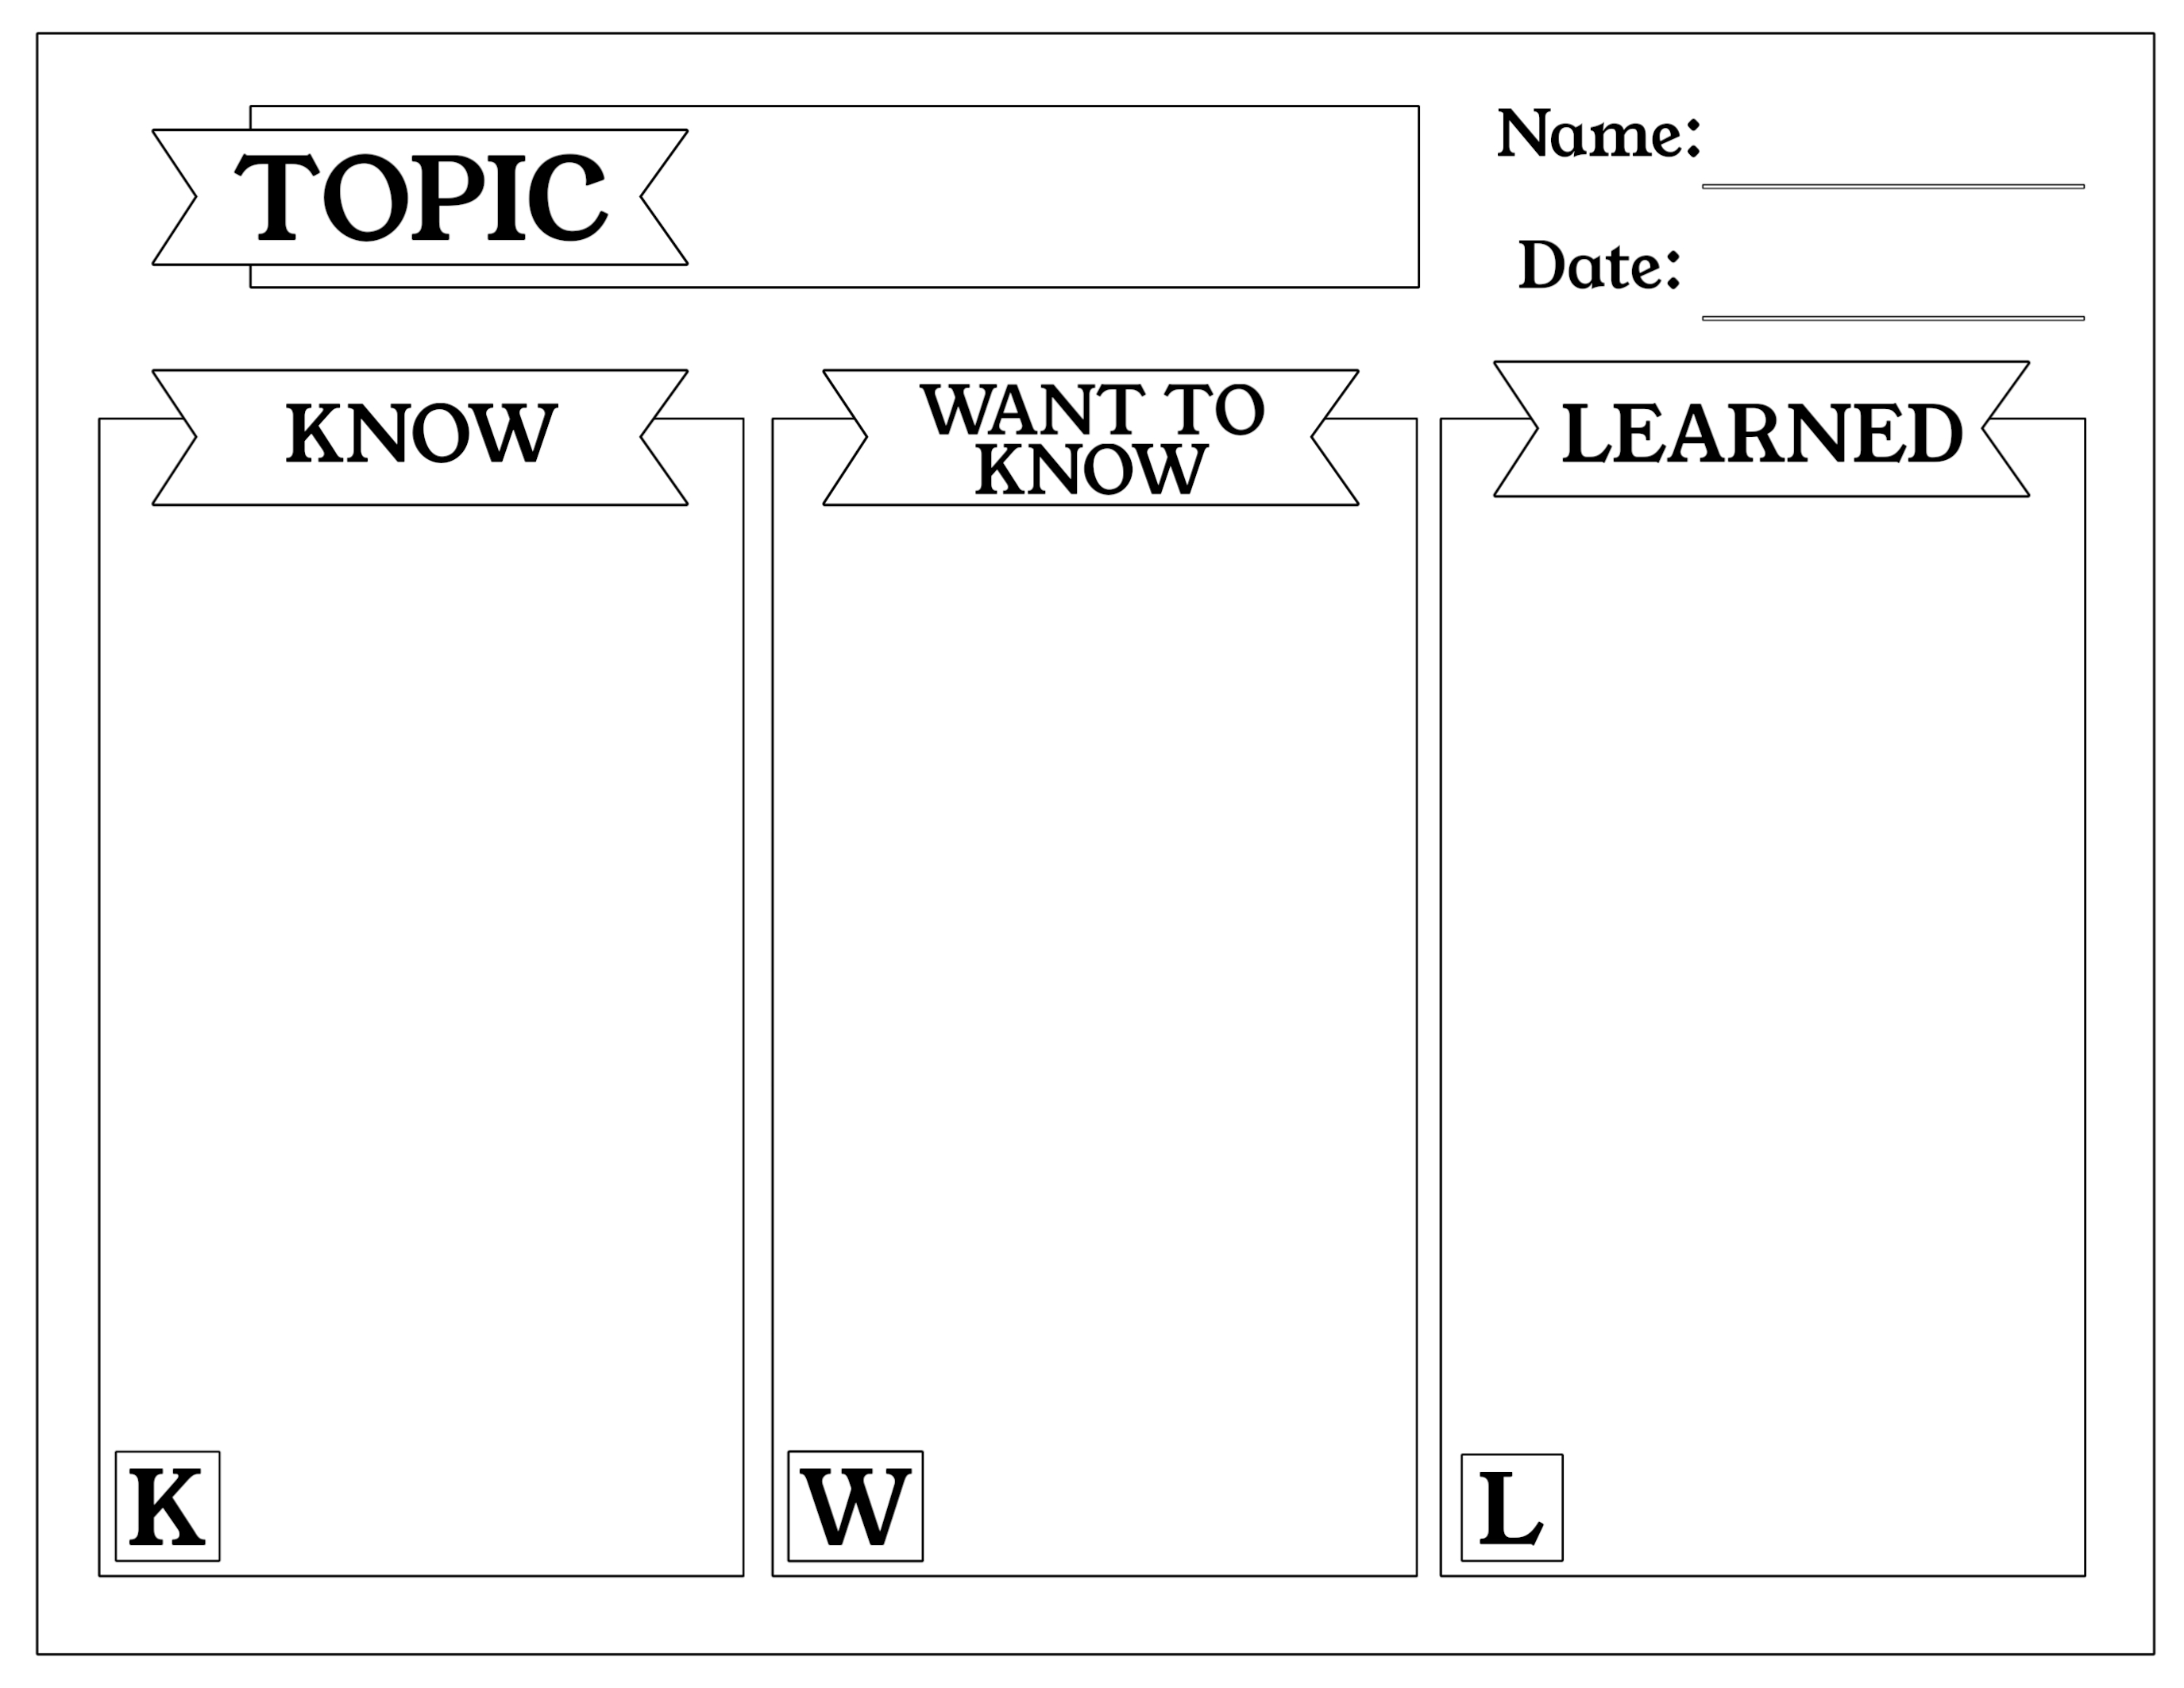 picture about Printable Kwl Charts named Cost-free KWL Chart Printable Picture Organizer - Paper Path Style